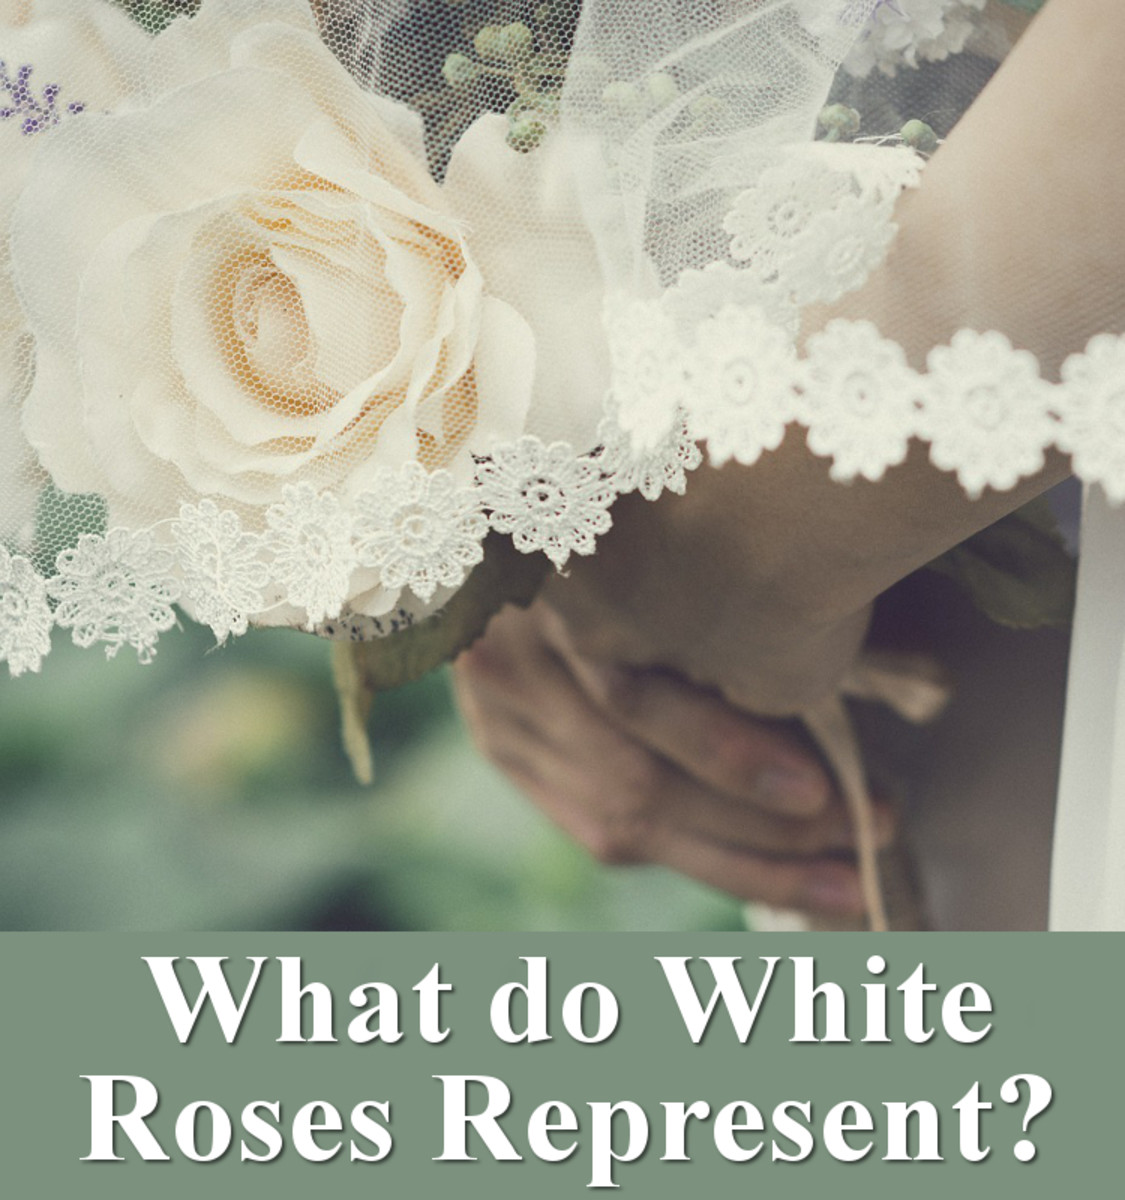 What do white roses represent?